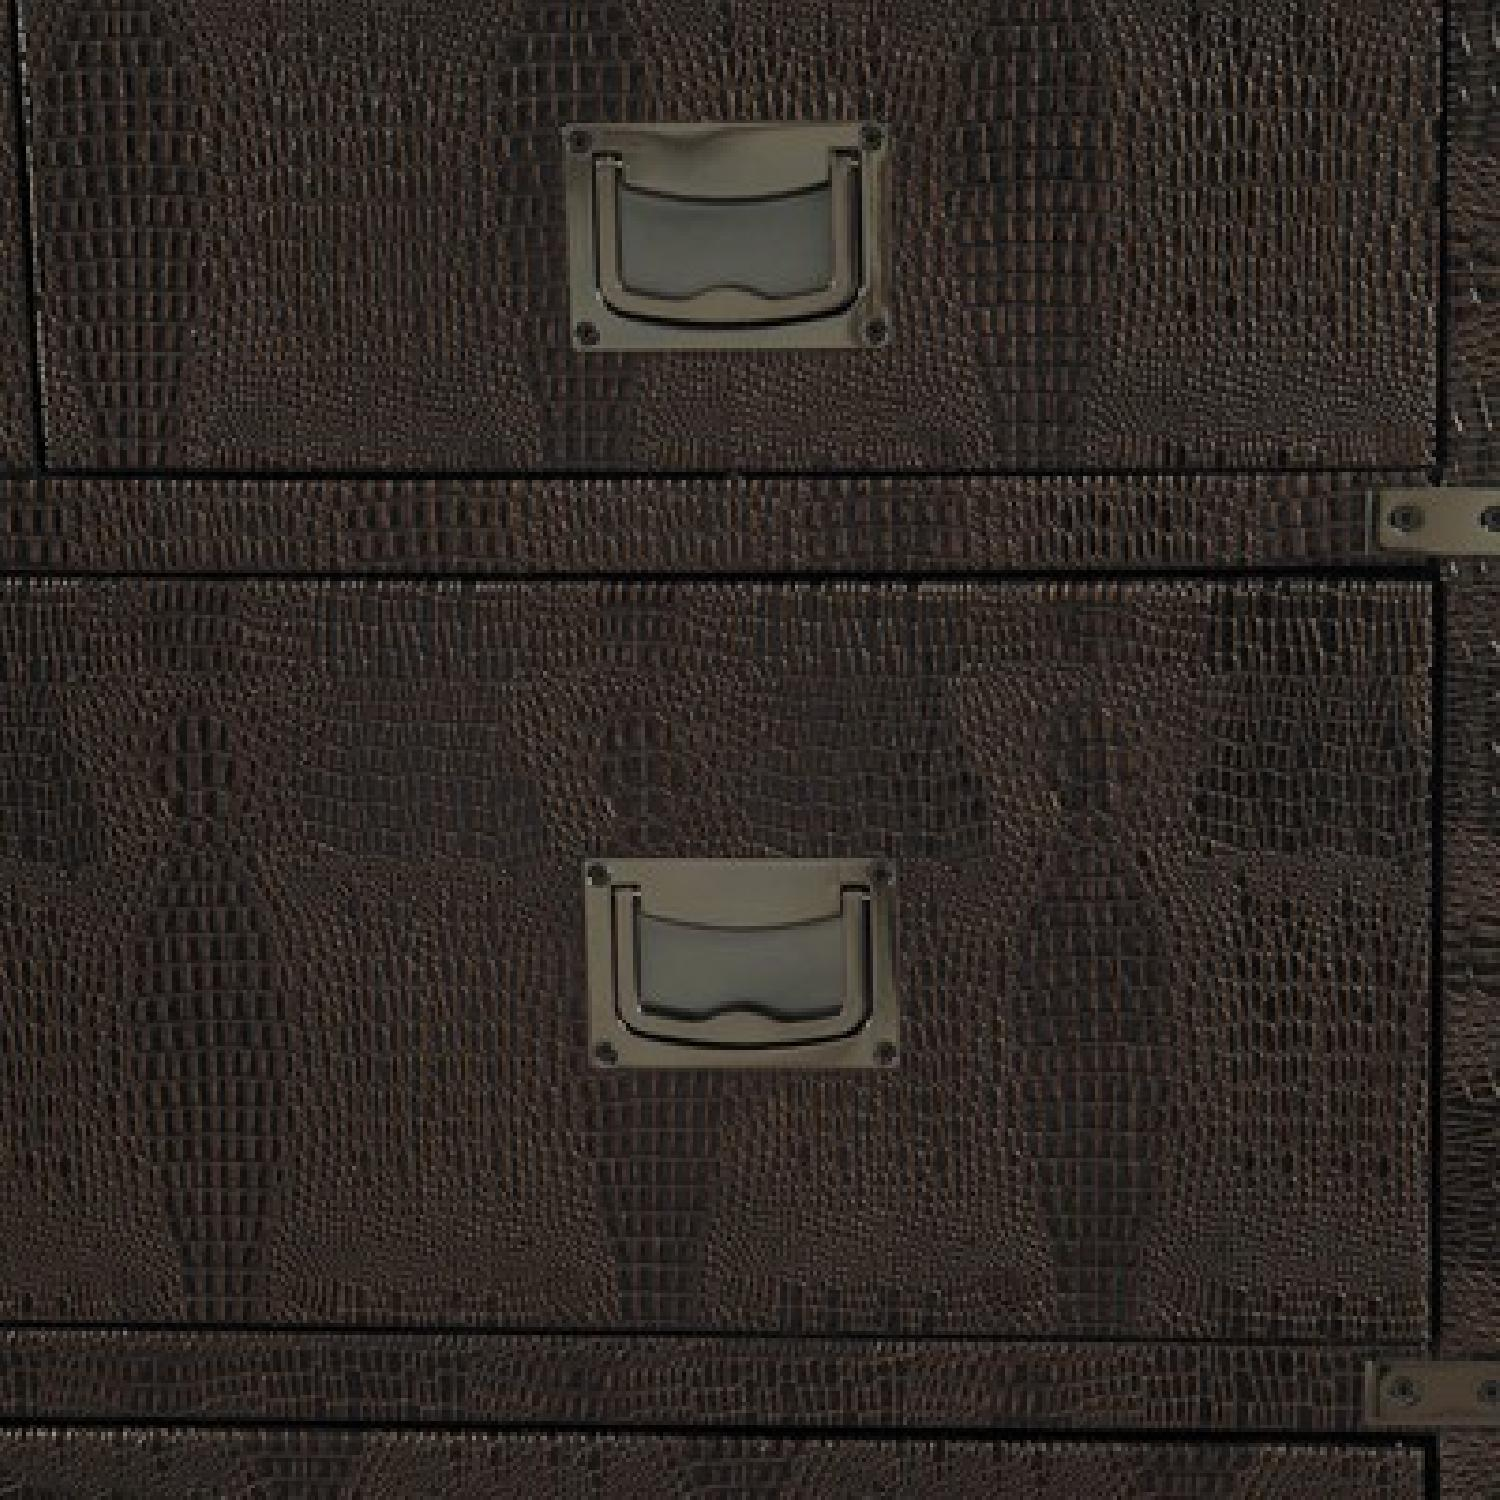 Accent Chest w/ Drawers in Dark Brown Faux Crocodile Finish - image-2